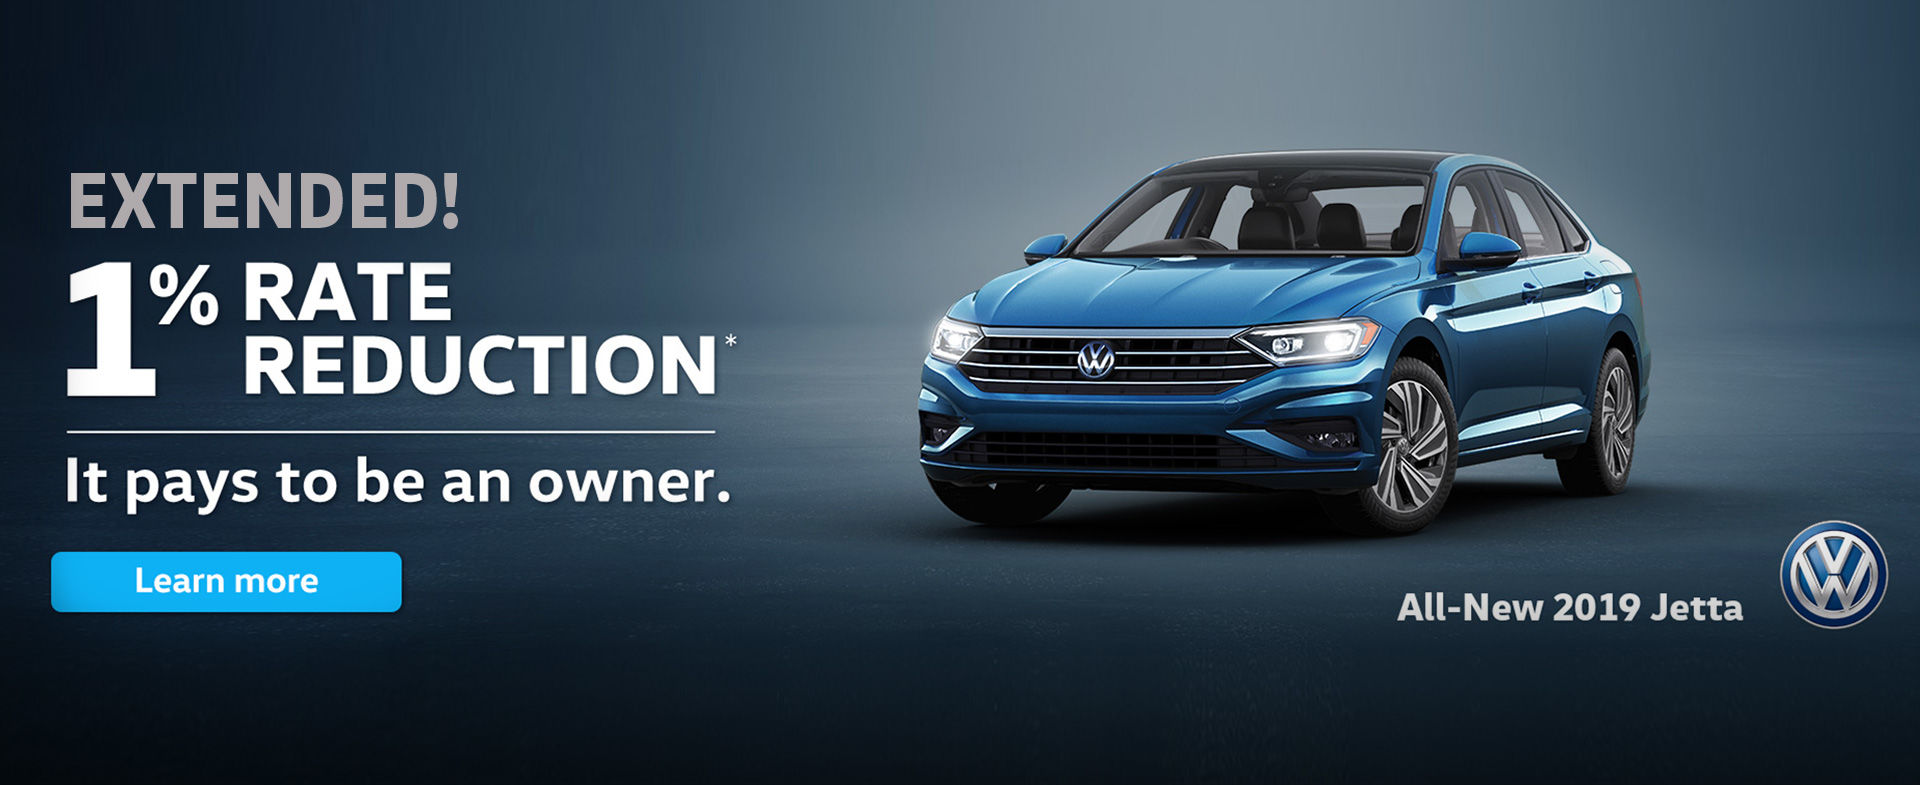 1% Rate Reduction on Jetta - December